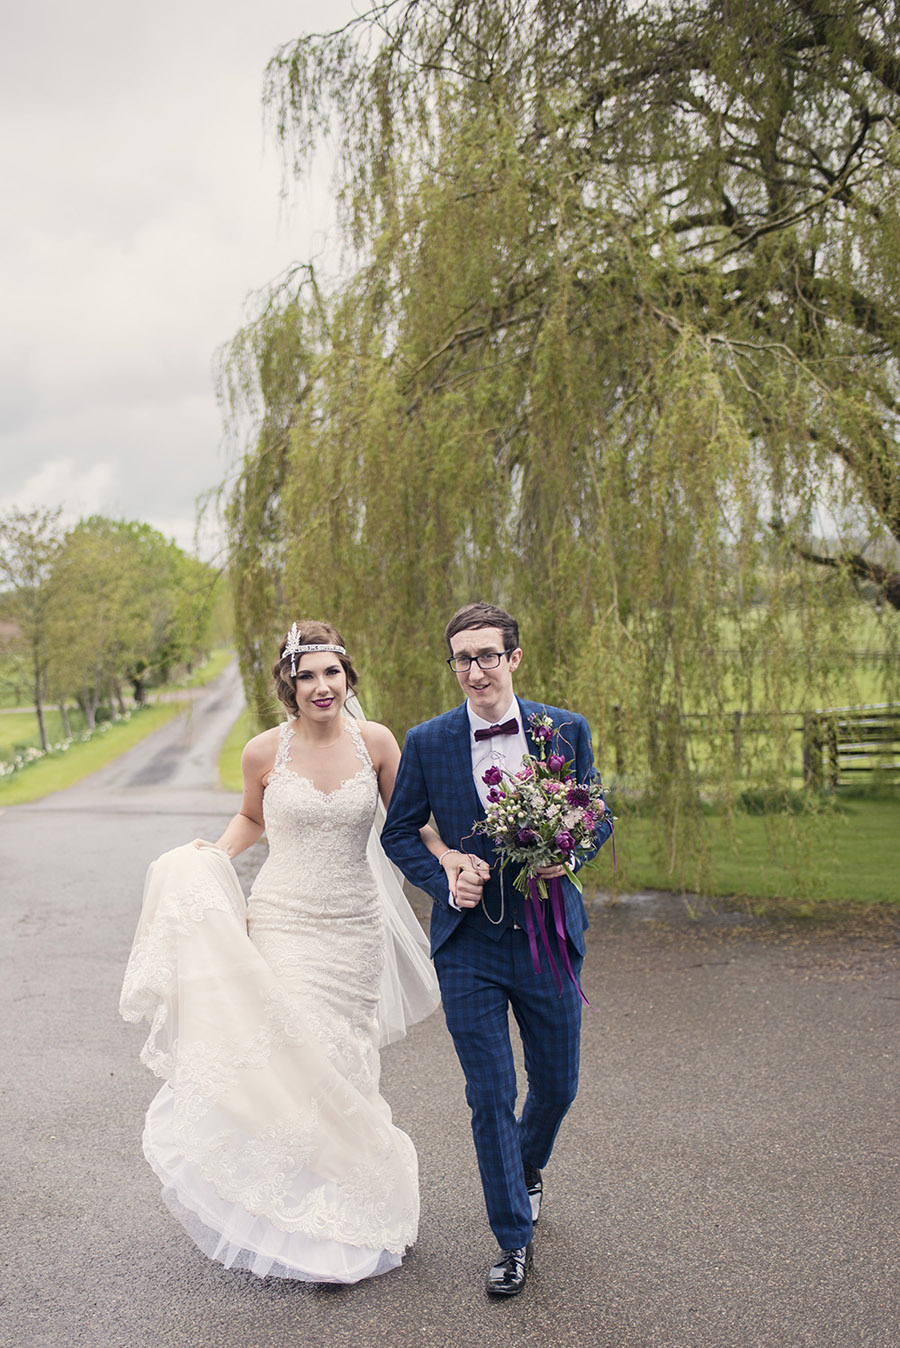 Gatsby vintage wedding at Crockwell Farm, images by Jodie Cooling Photography (22)